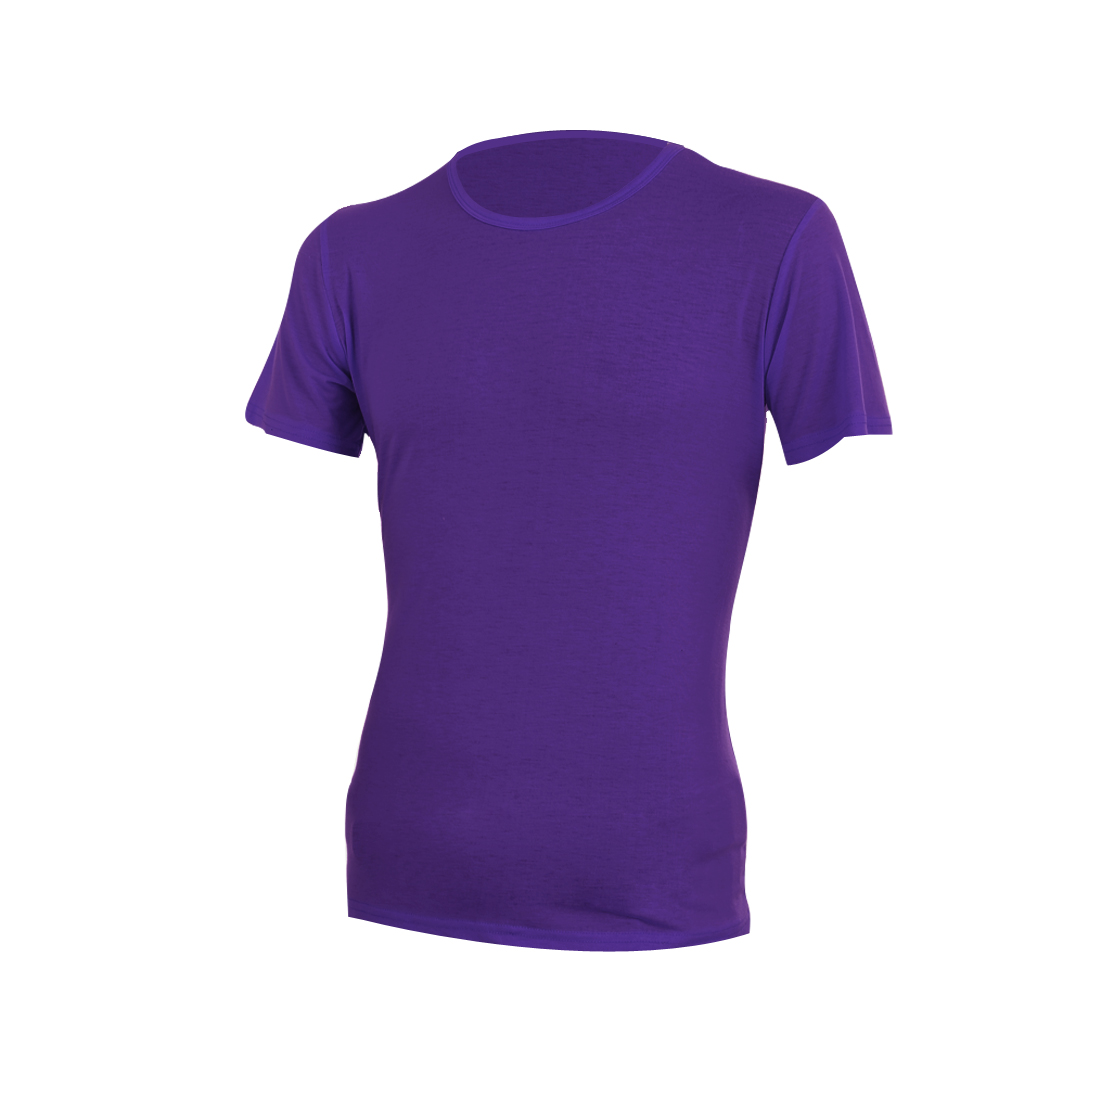 Menv Short Sleeve Round Neck Pullover Design Casual Top Tee Shirt M Purple